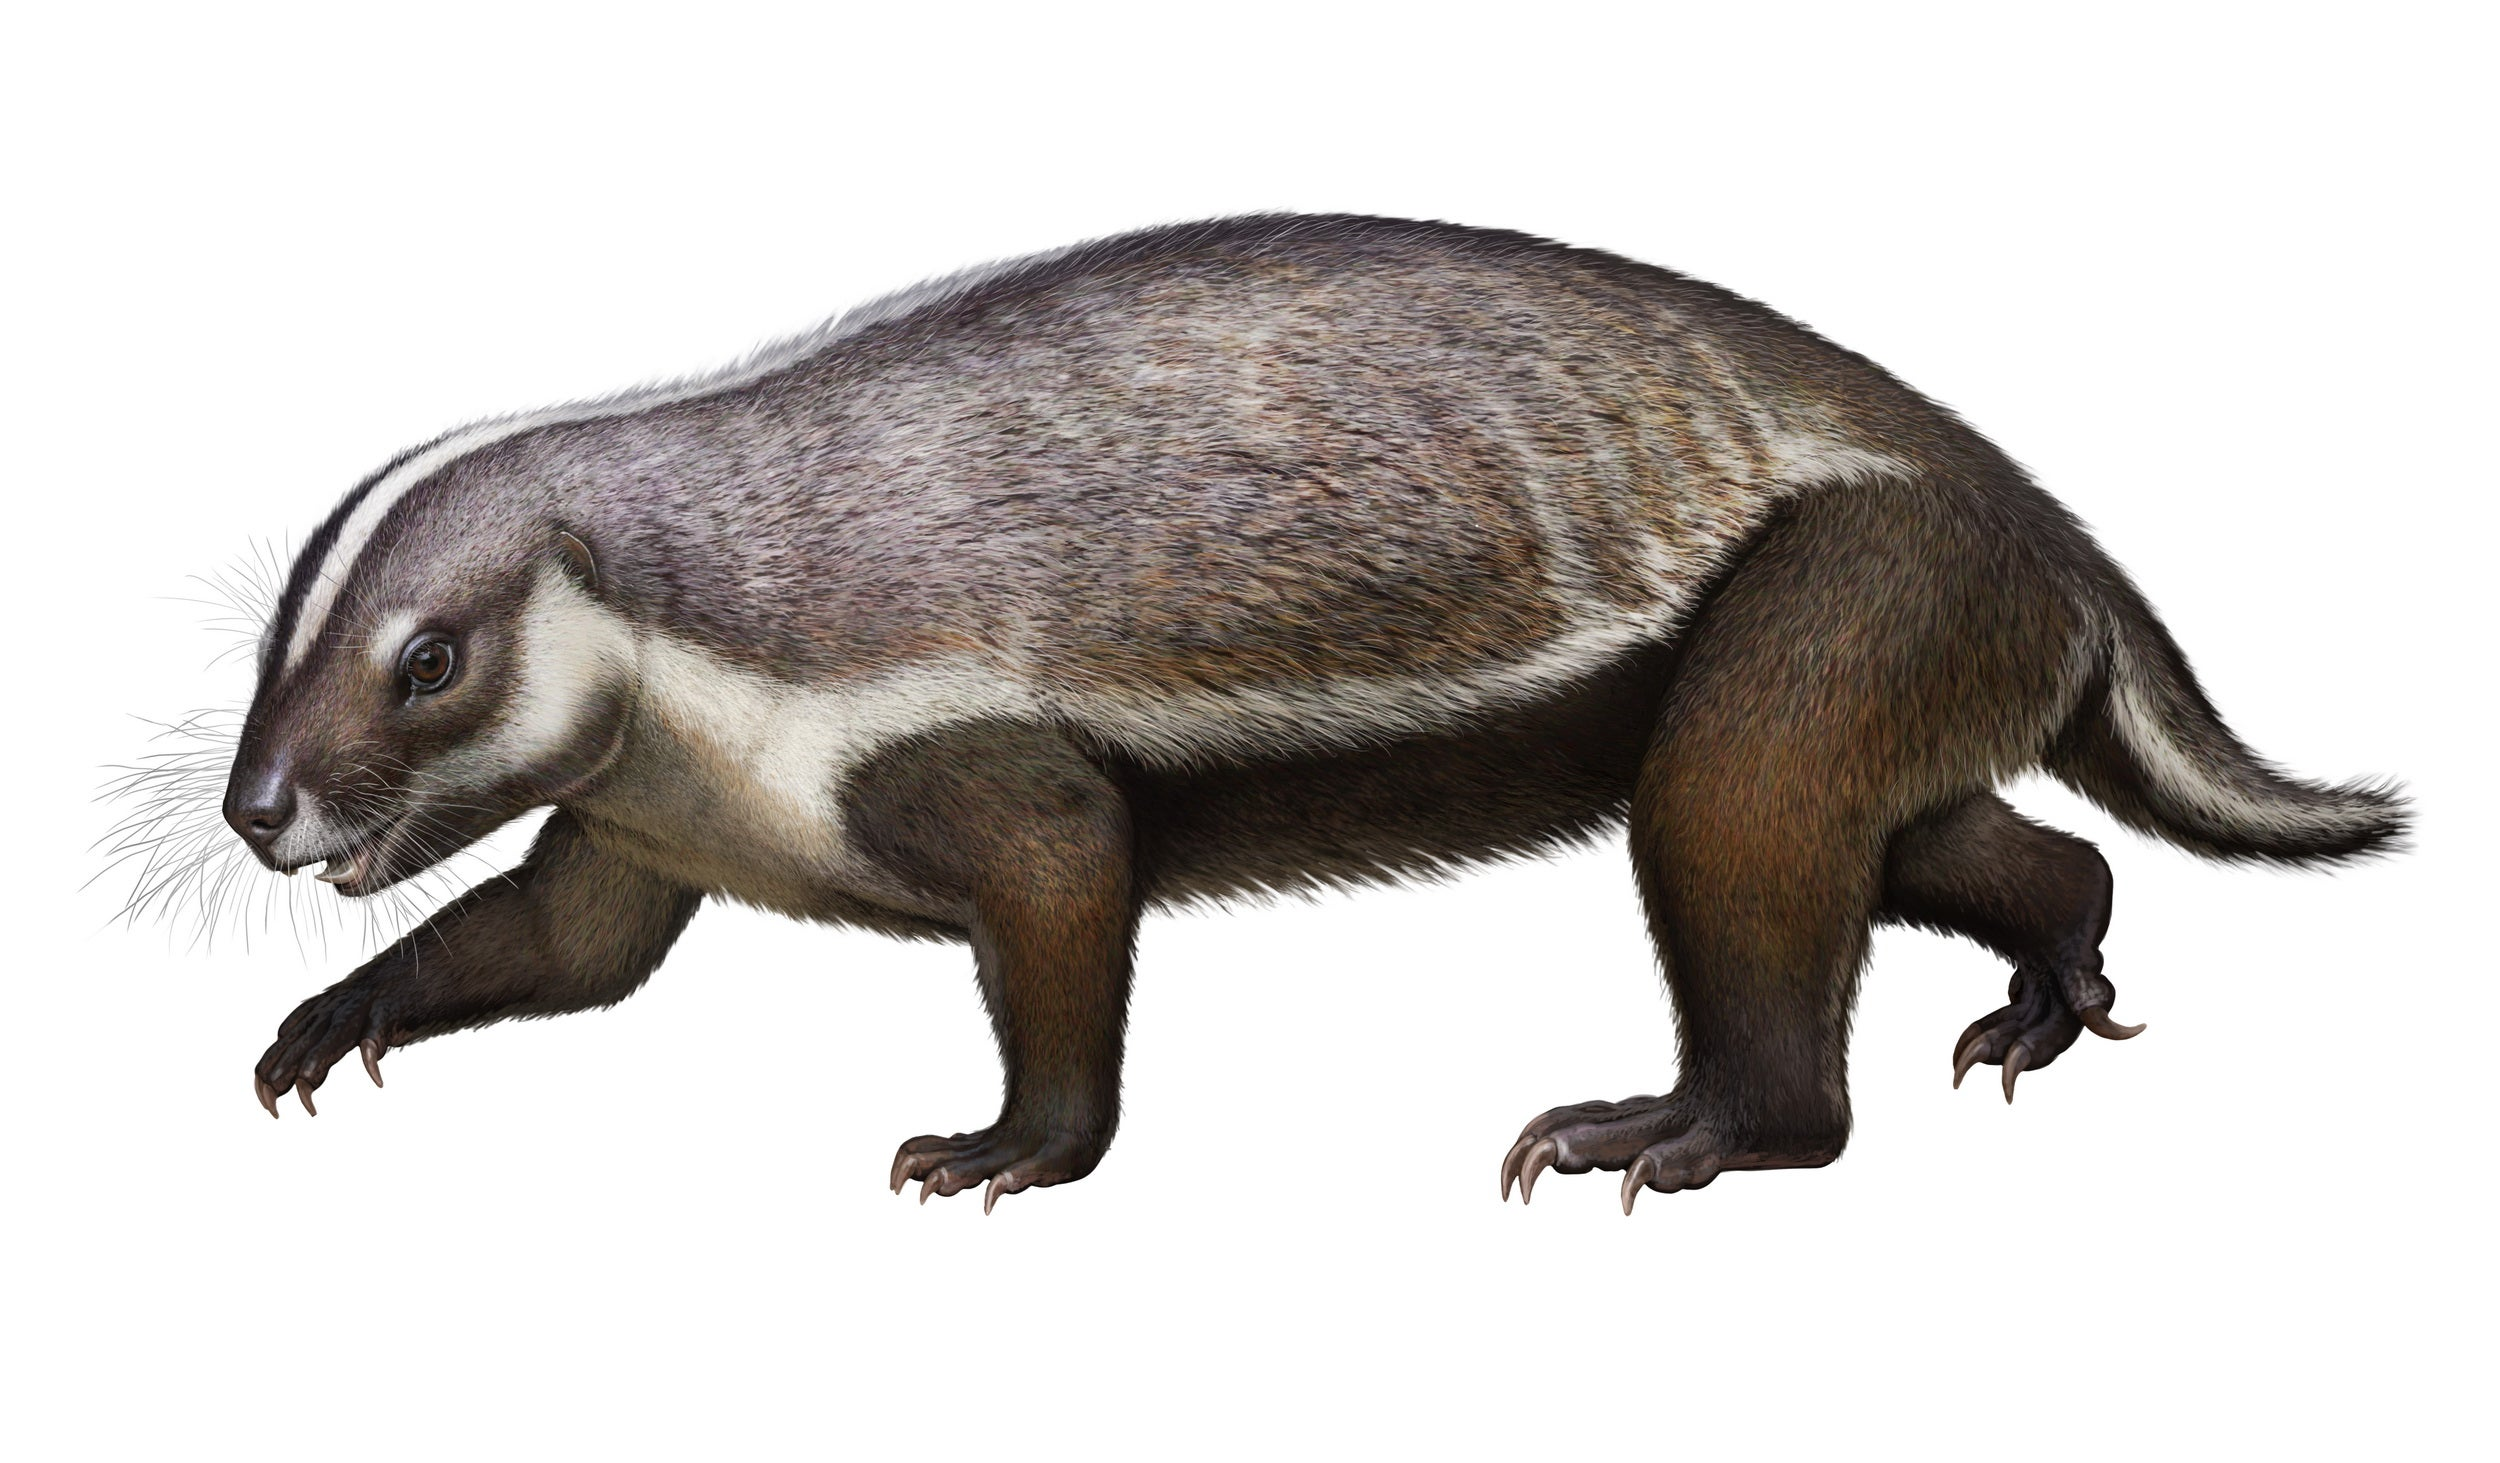 'Crazy Beast' Fossil Discovered In Madagascar Reveals Bizarre Mammal From The Cretaceous